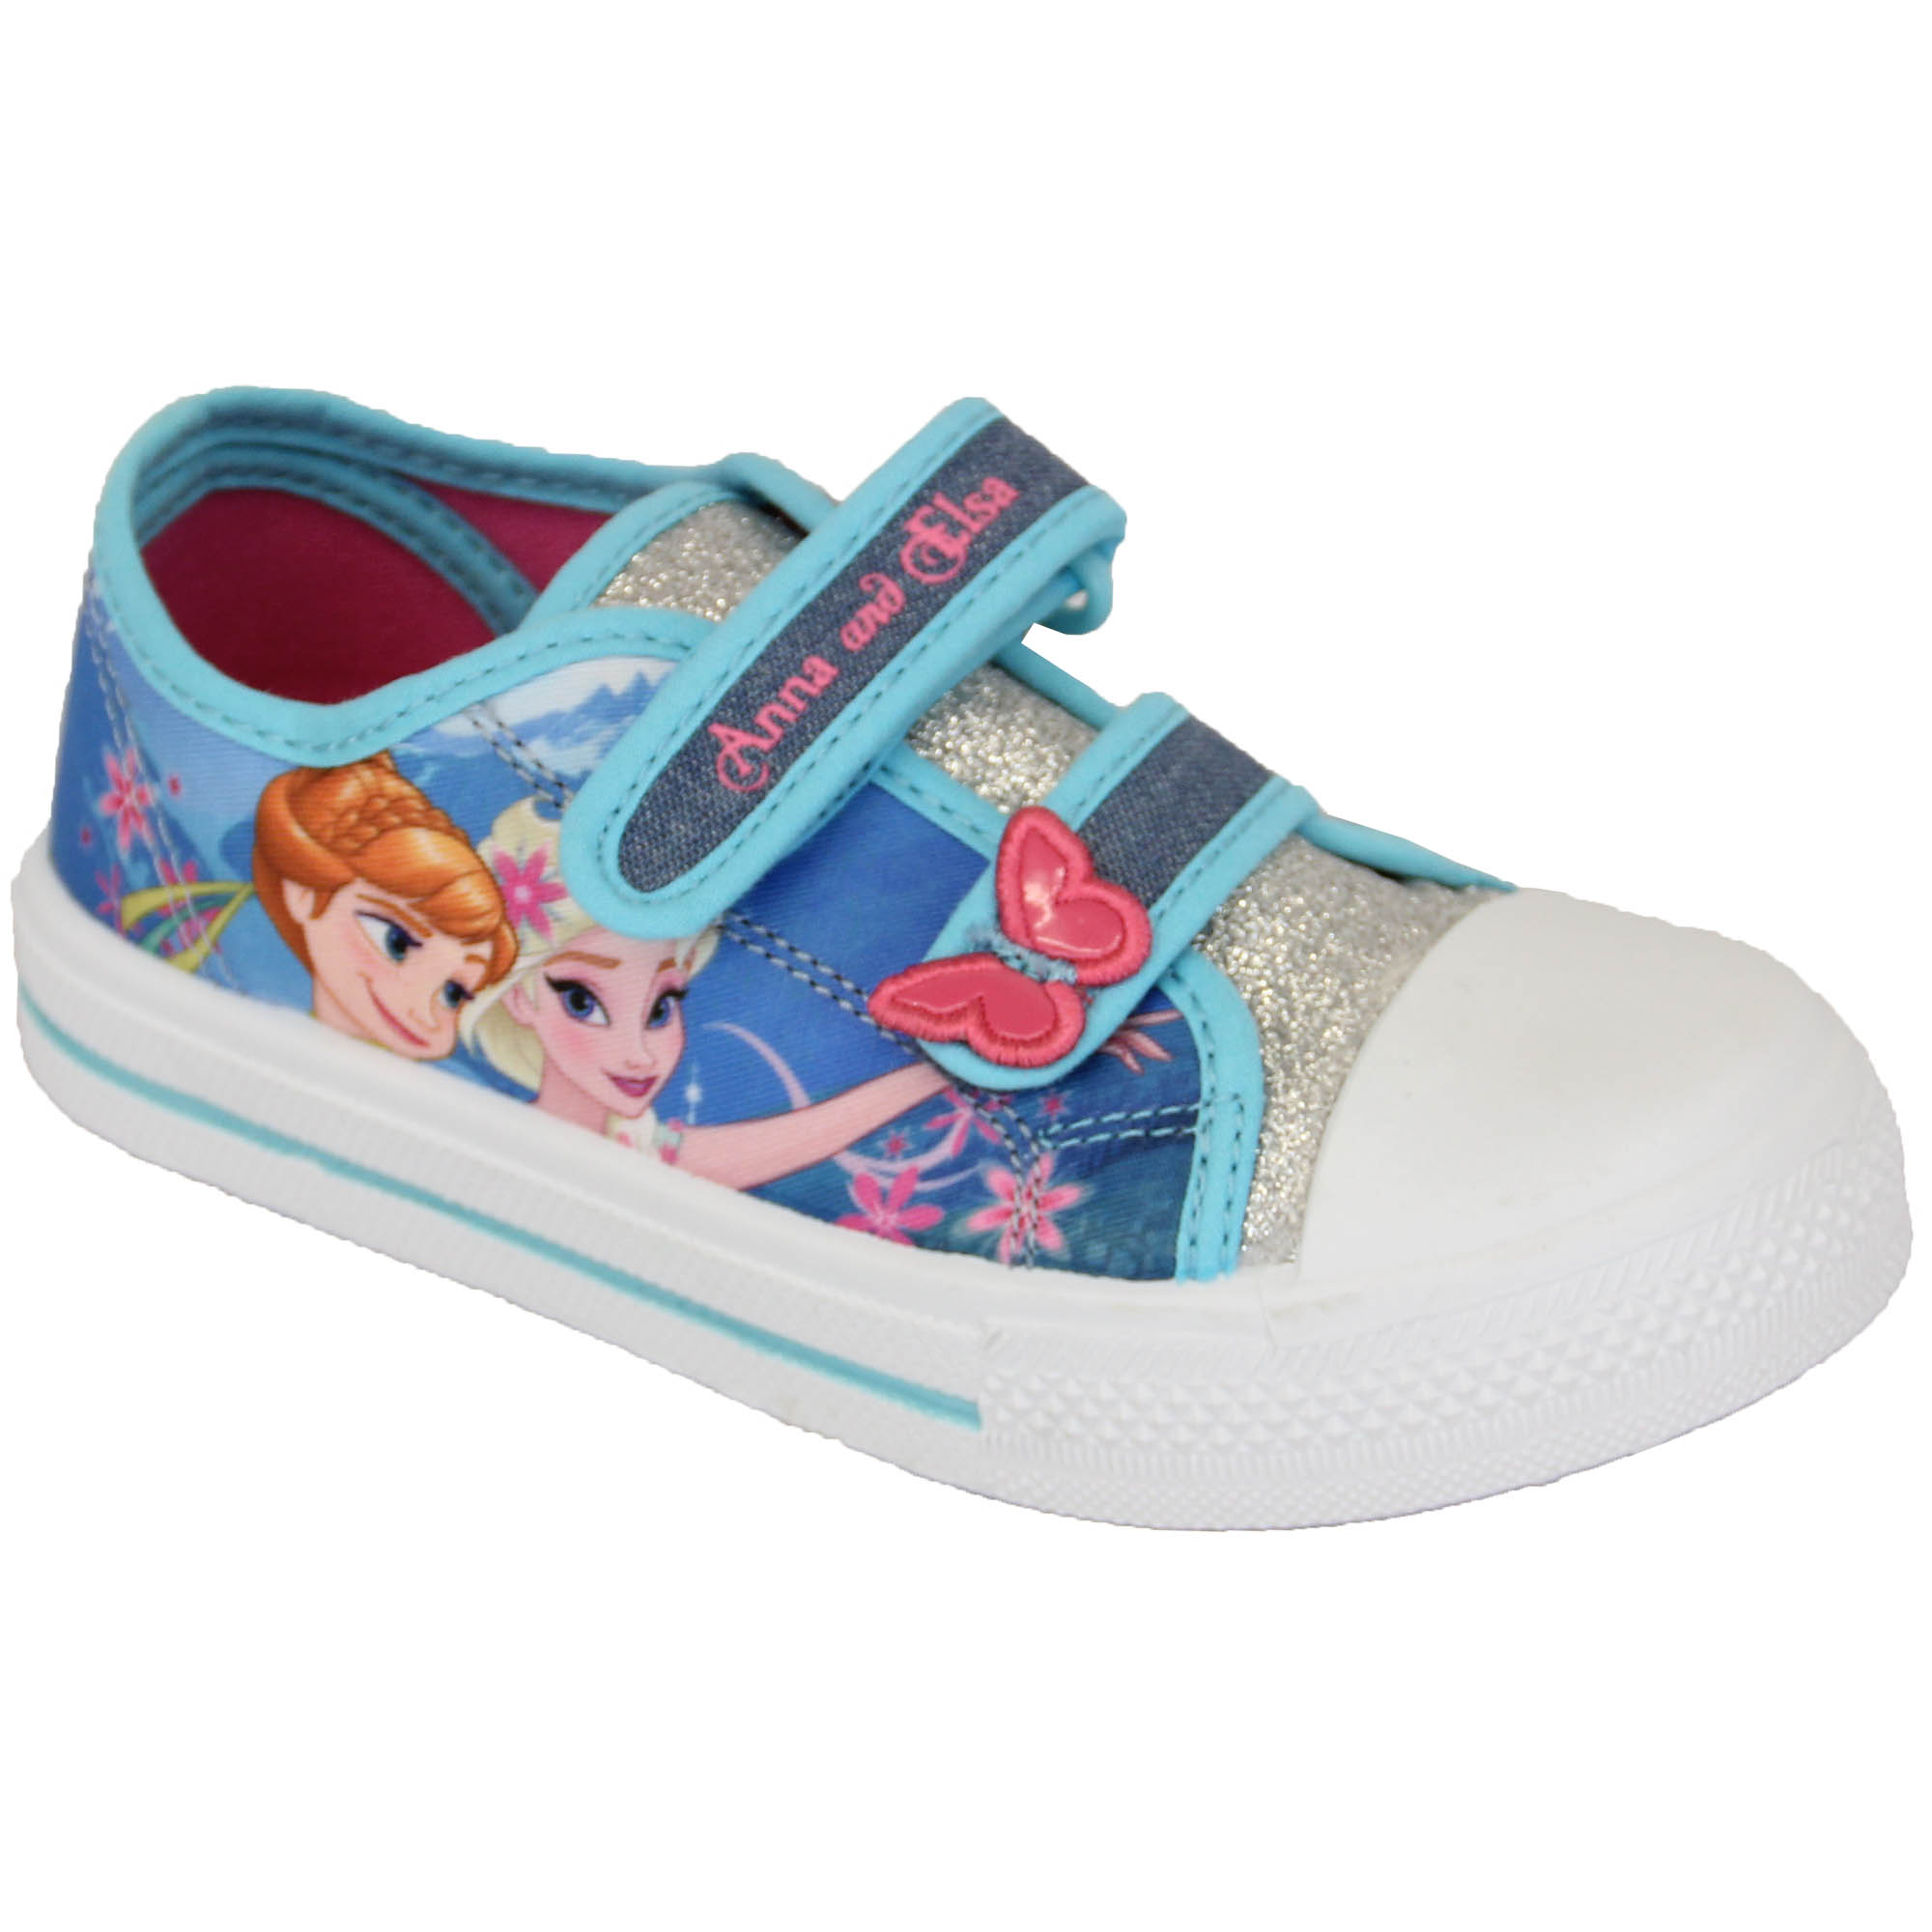 Disney Kids Sneaker In Tela Luci Paw Patrol Multicolore kZXXiOWIxl